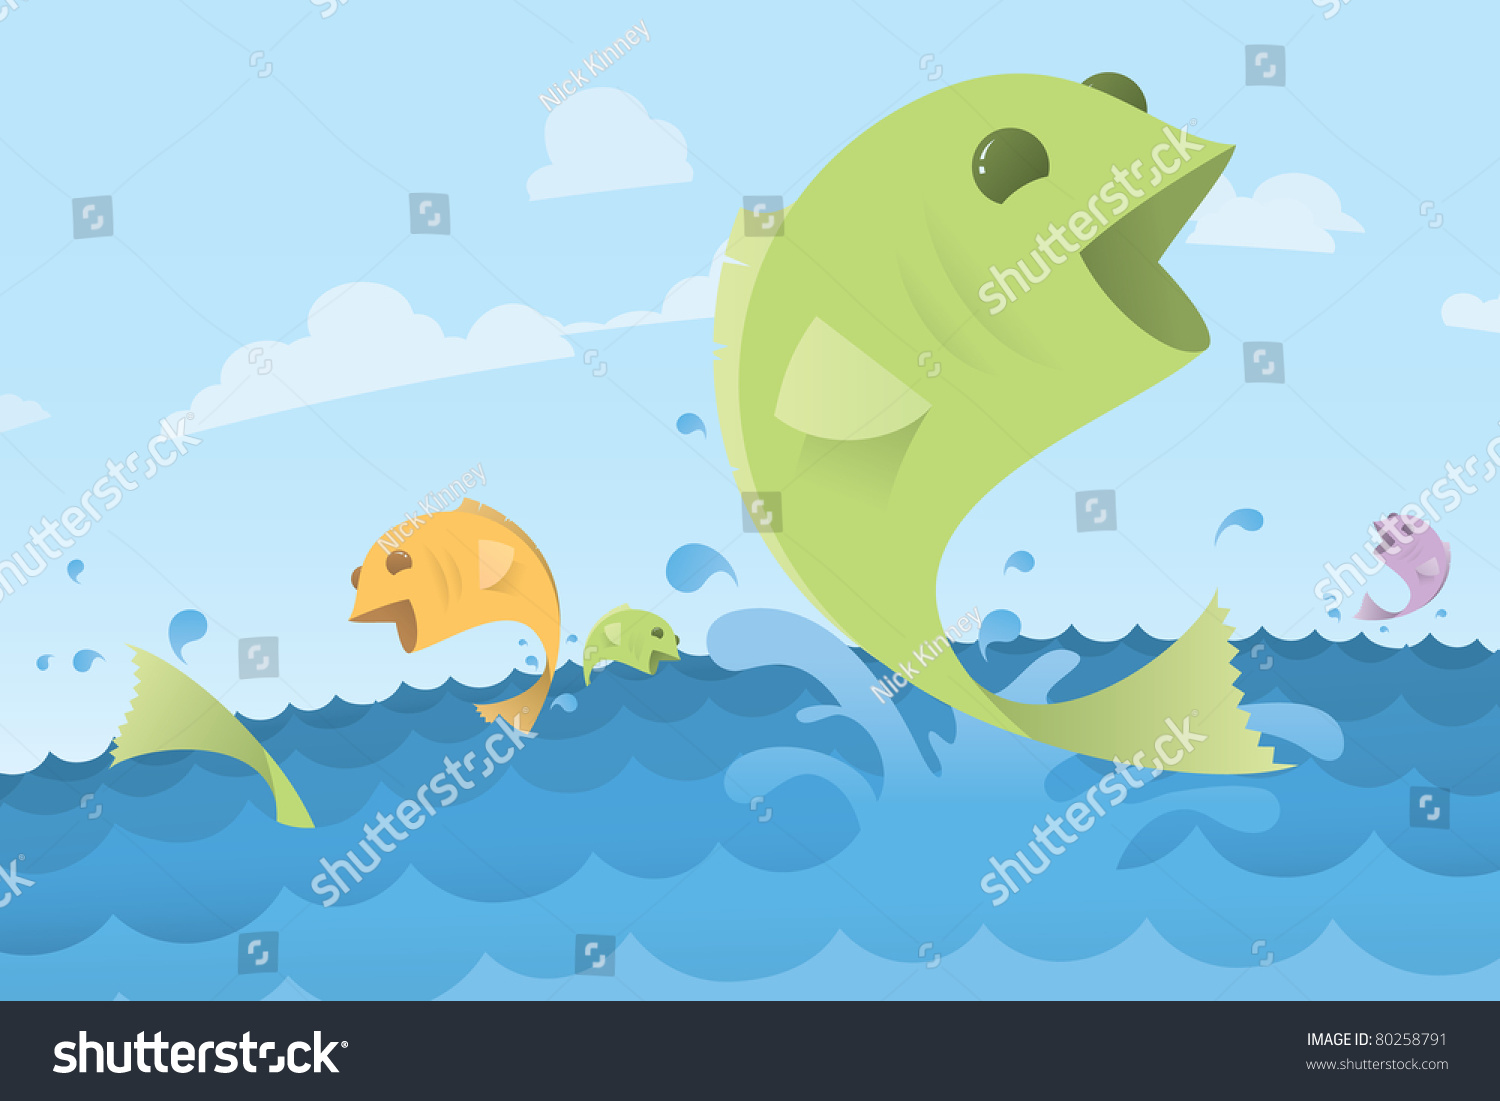 Freshwater fish jumping - Fish Jumping Out Of Ocean Water Waves Stylish Vector Illustration